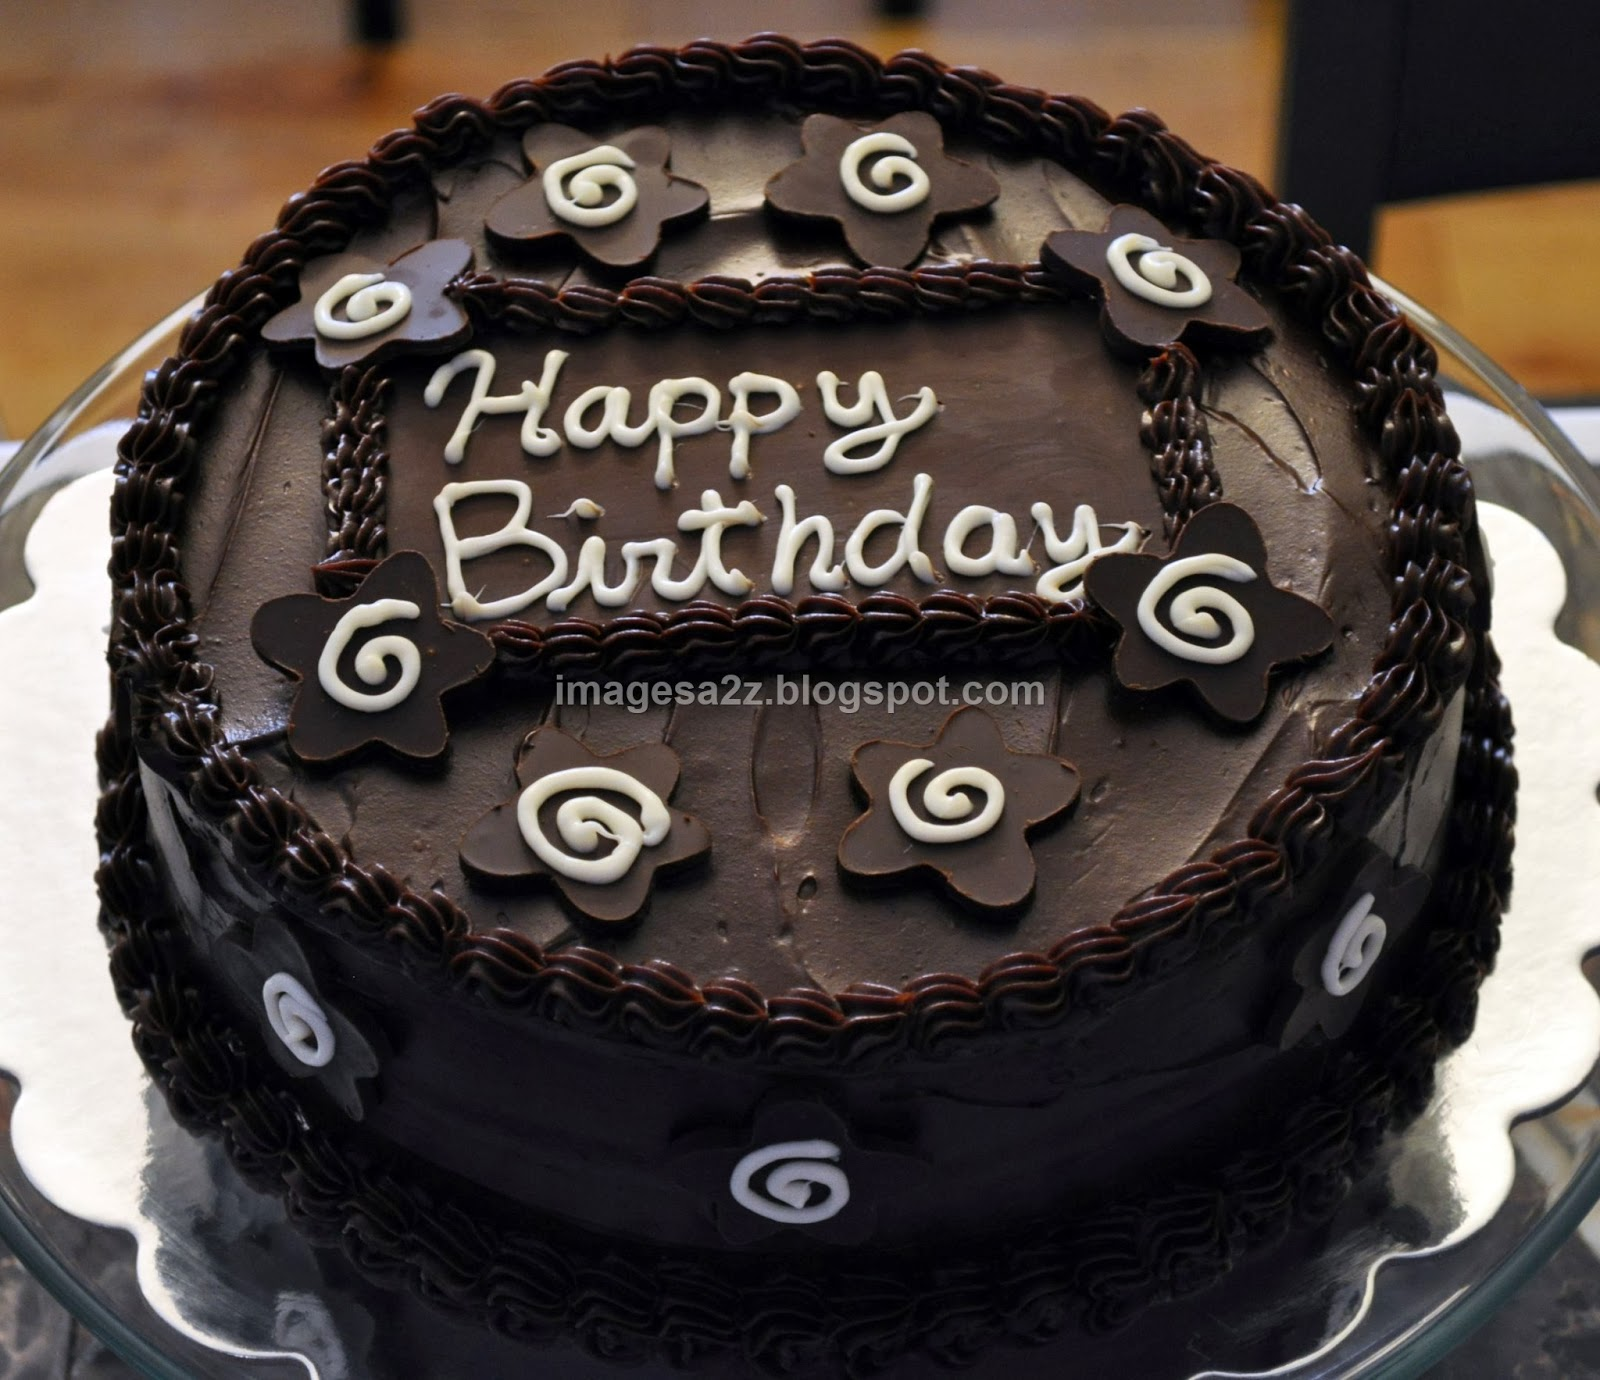 Images Of Birthday Cake For Friend : attractive birthday wishes for friends cake birthday ...